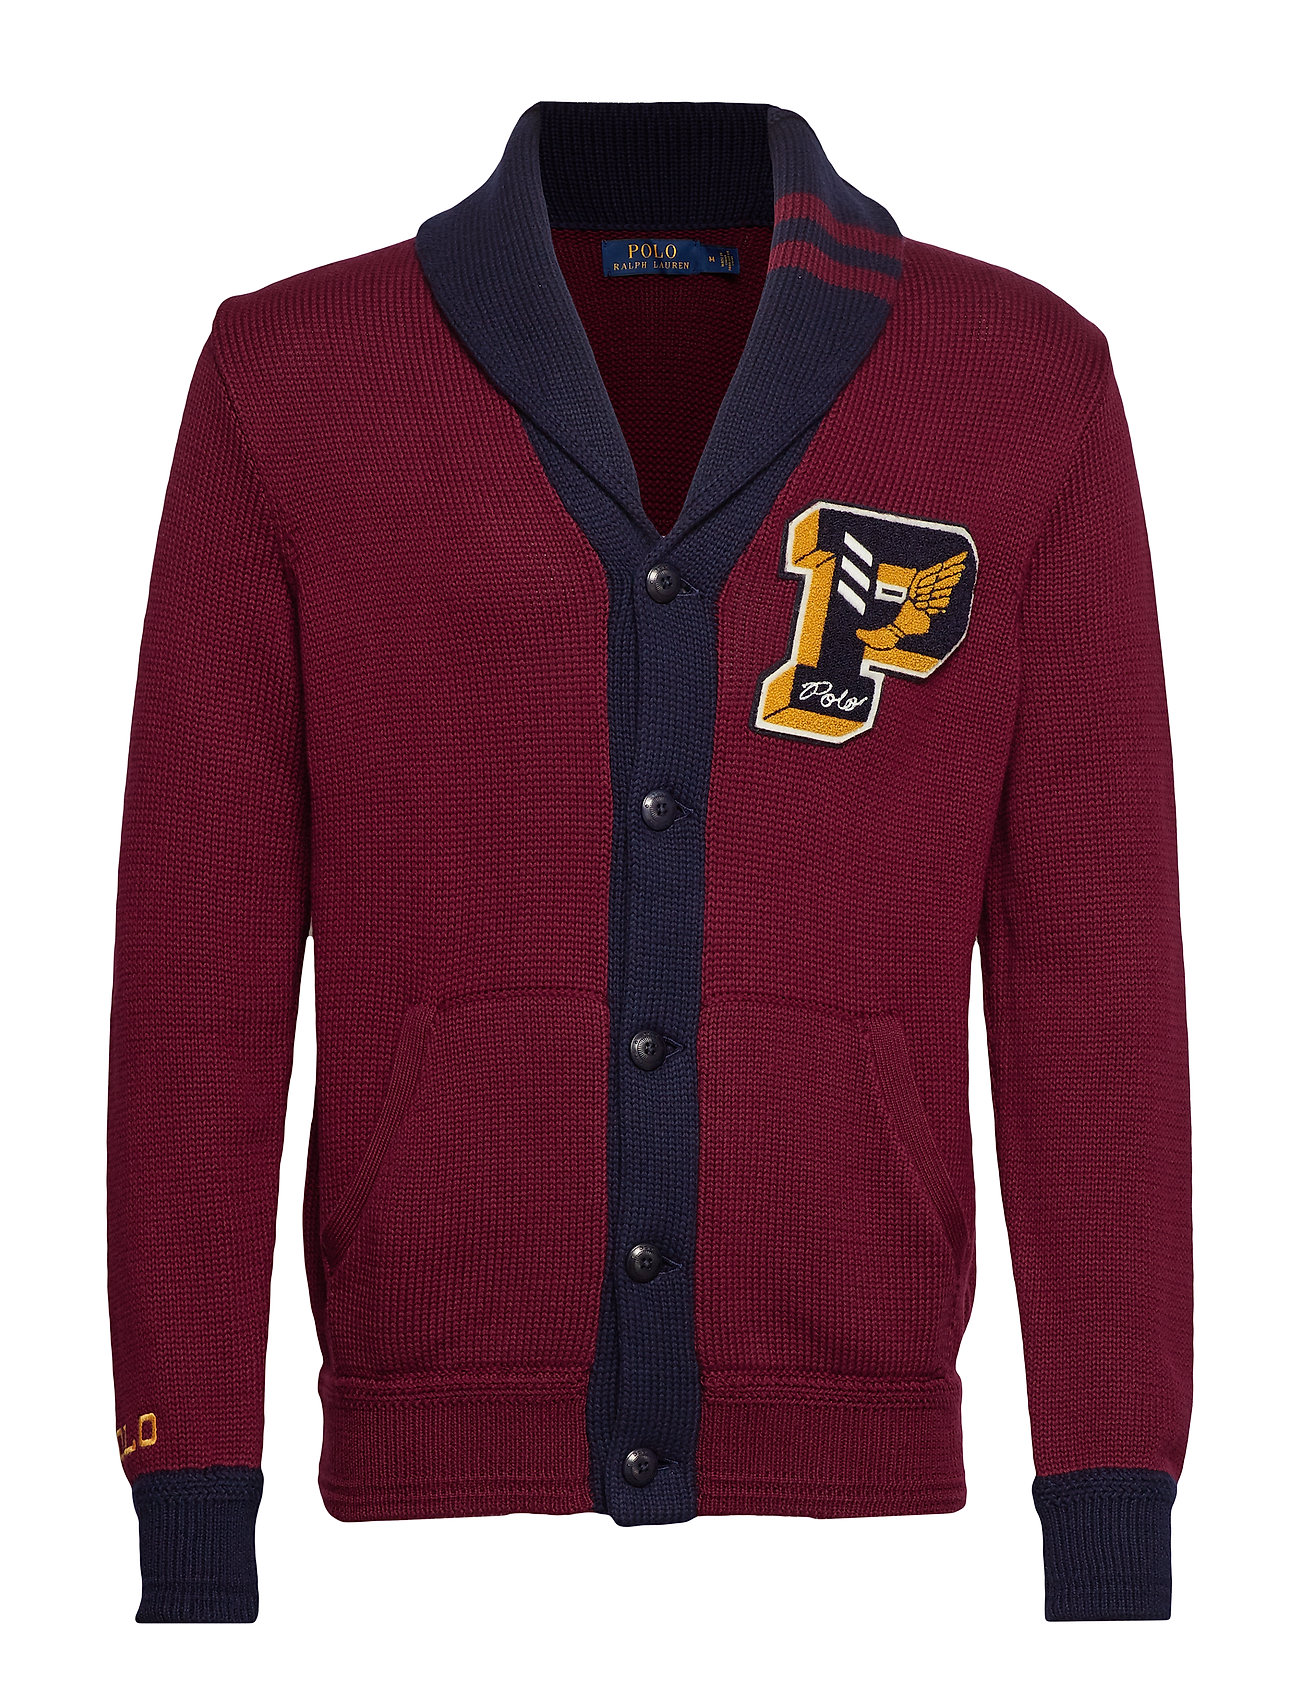 Polo Ralph Lauren Cotton Letterman Cardigan - CLASSIC WINE/NAVY